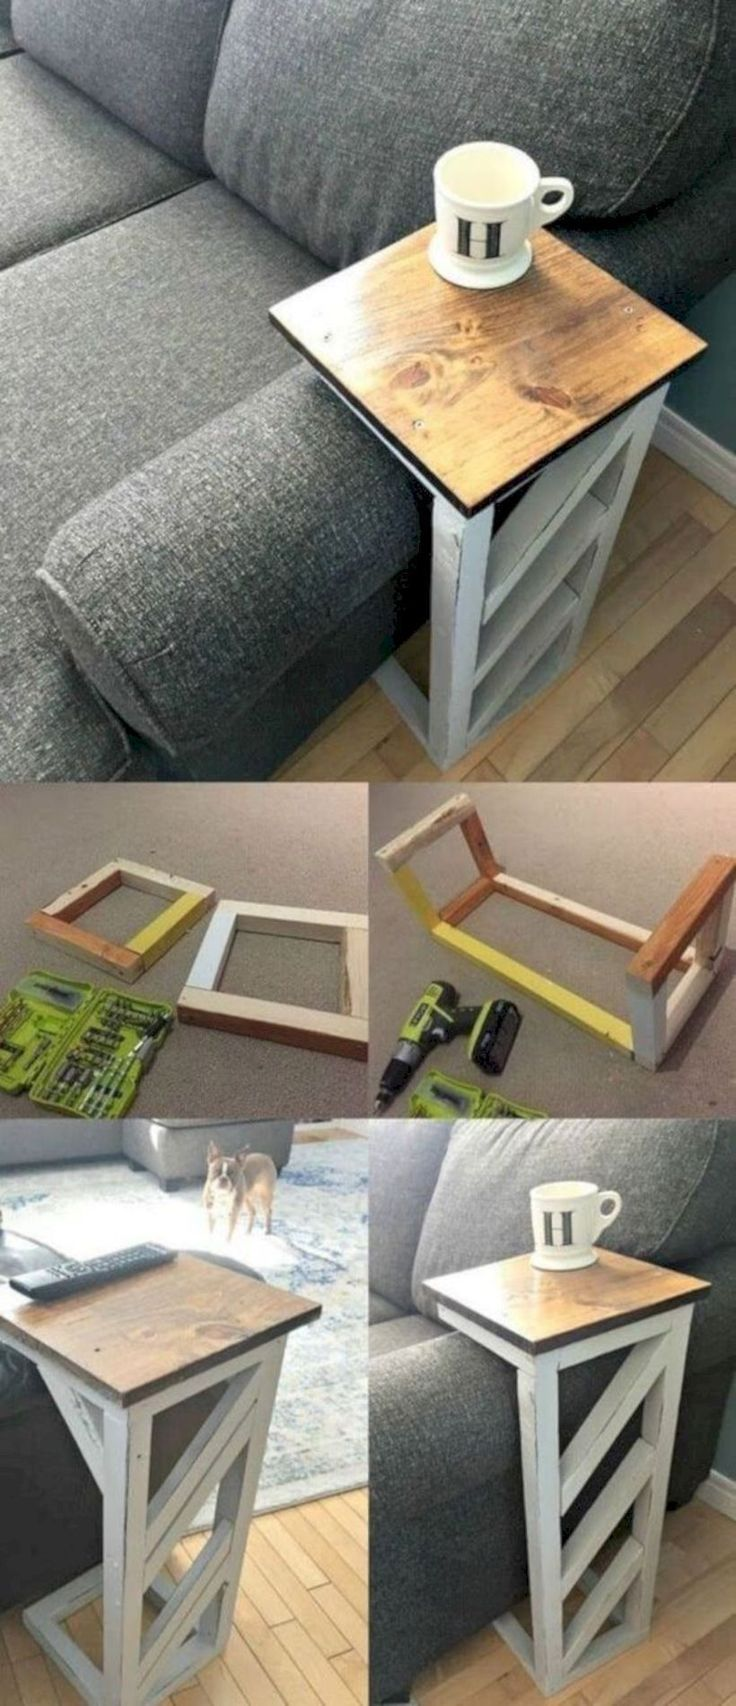 44 Remarkable Projects and Ideas to Improve Your Home DecorMommy 2 Two Boys